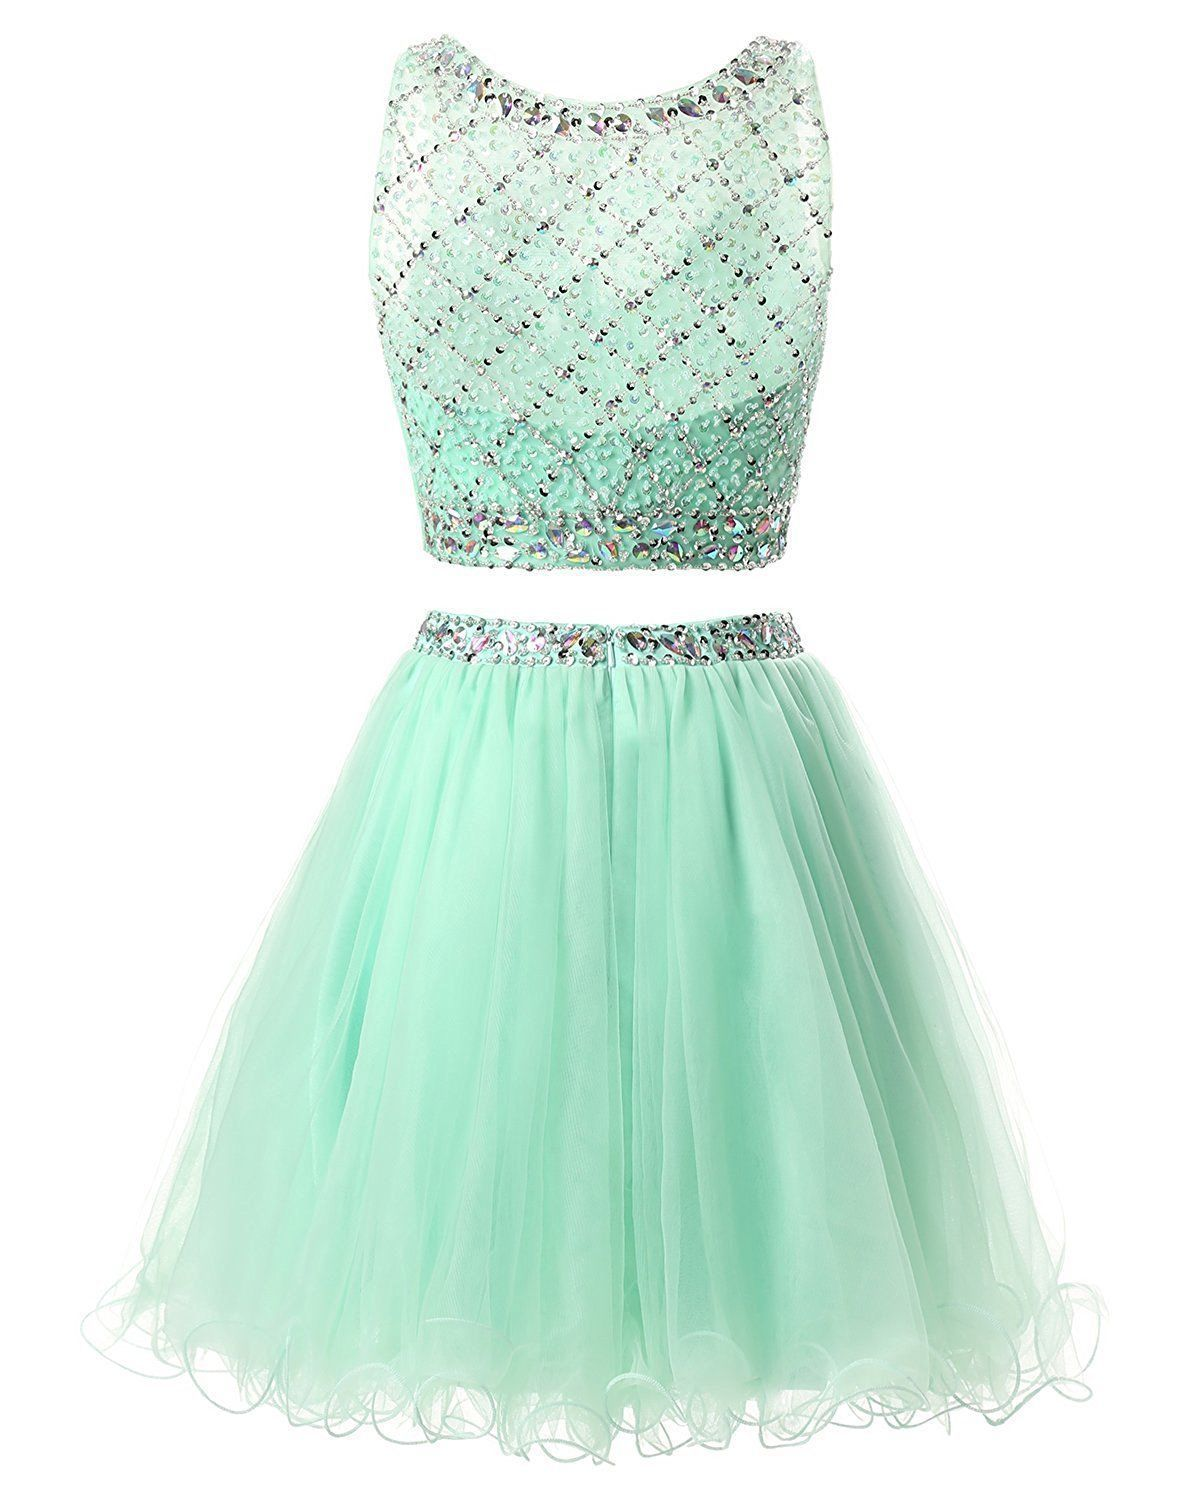 Womenus short v neck homecoming dress fitted formal gowns with beads